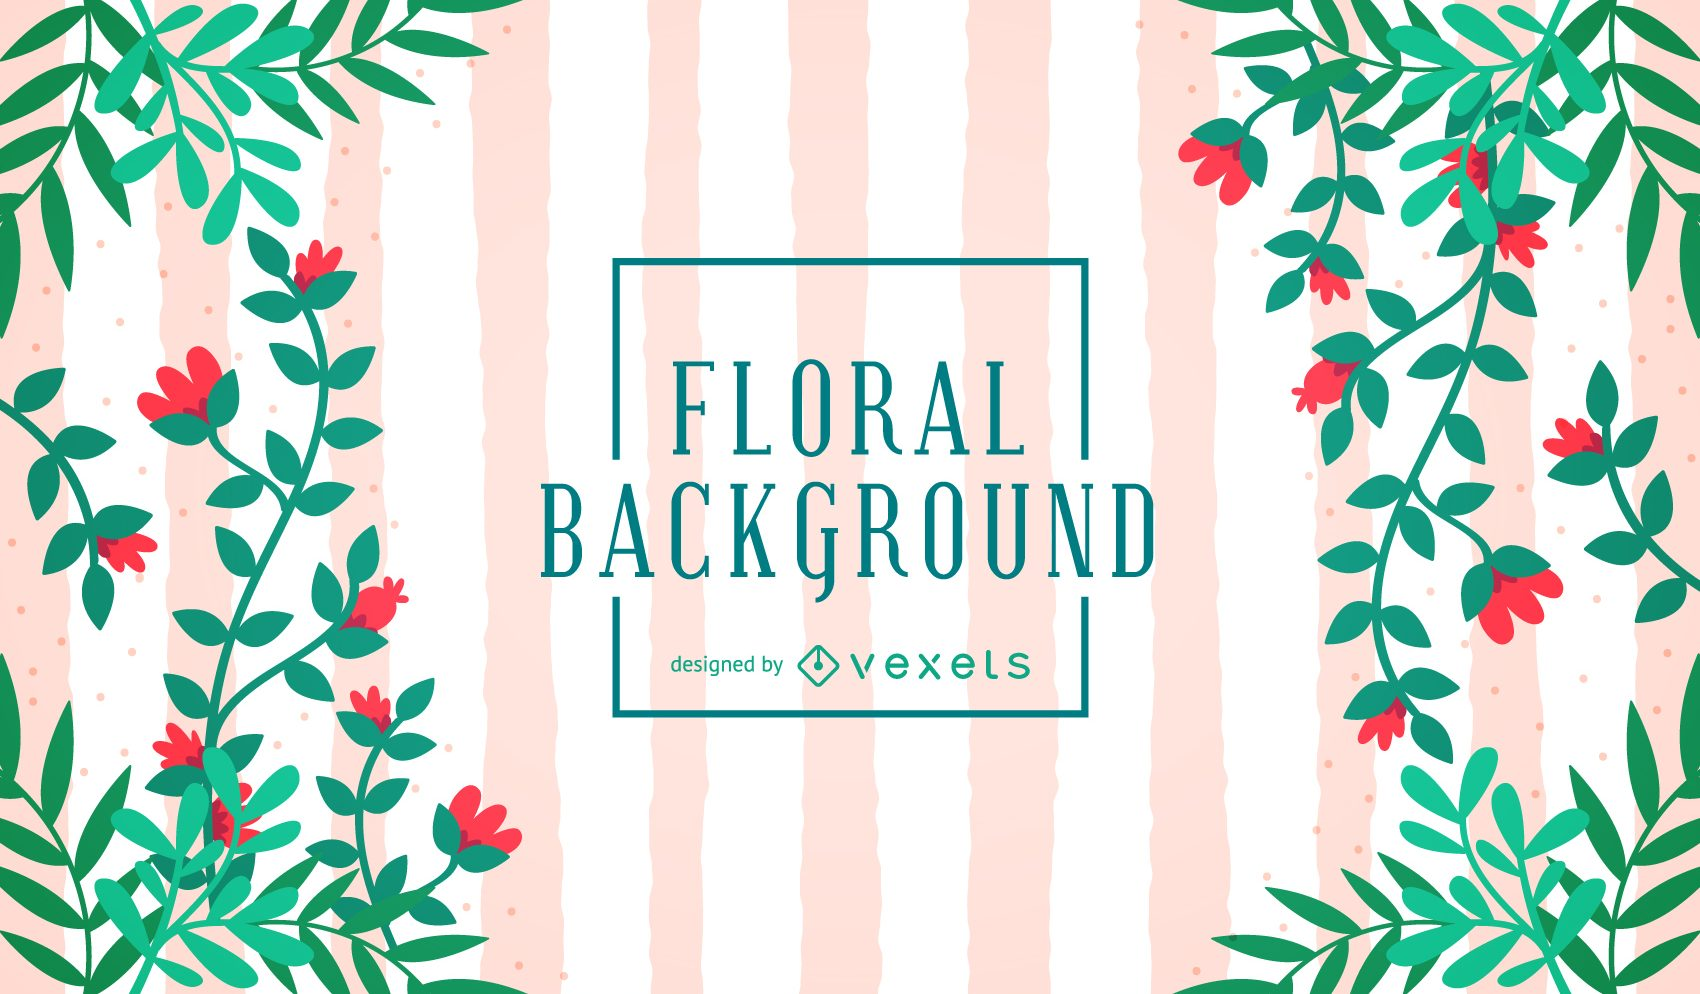 50 floral background ideas